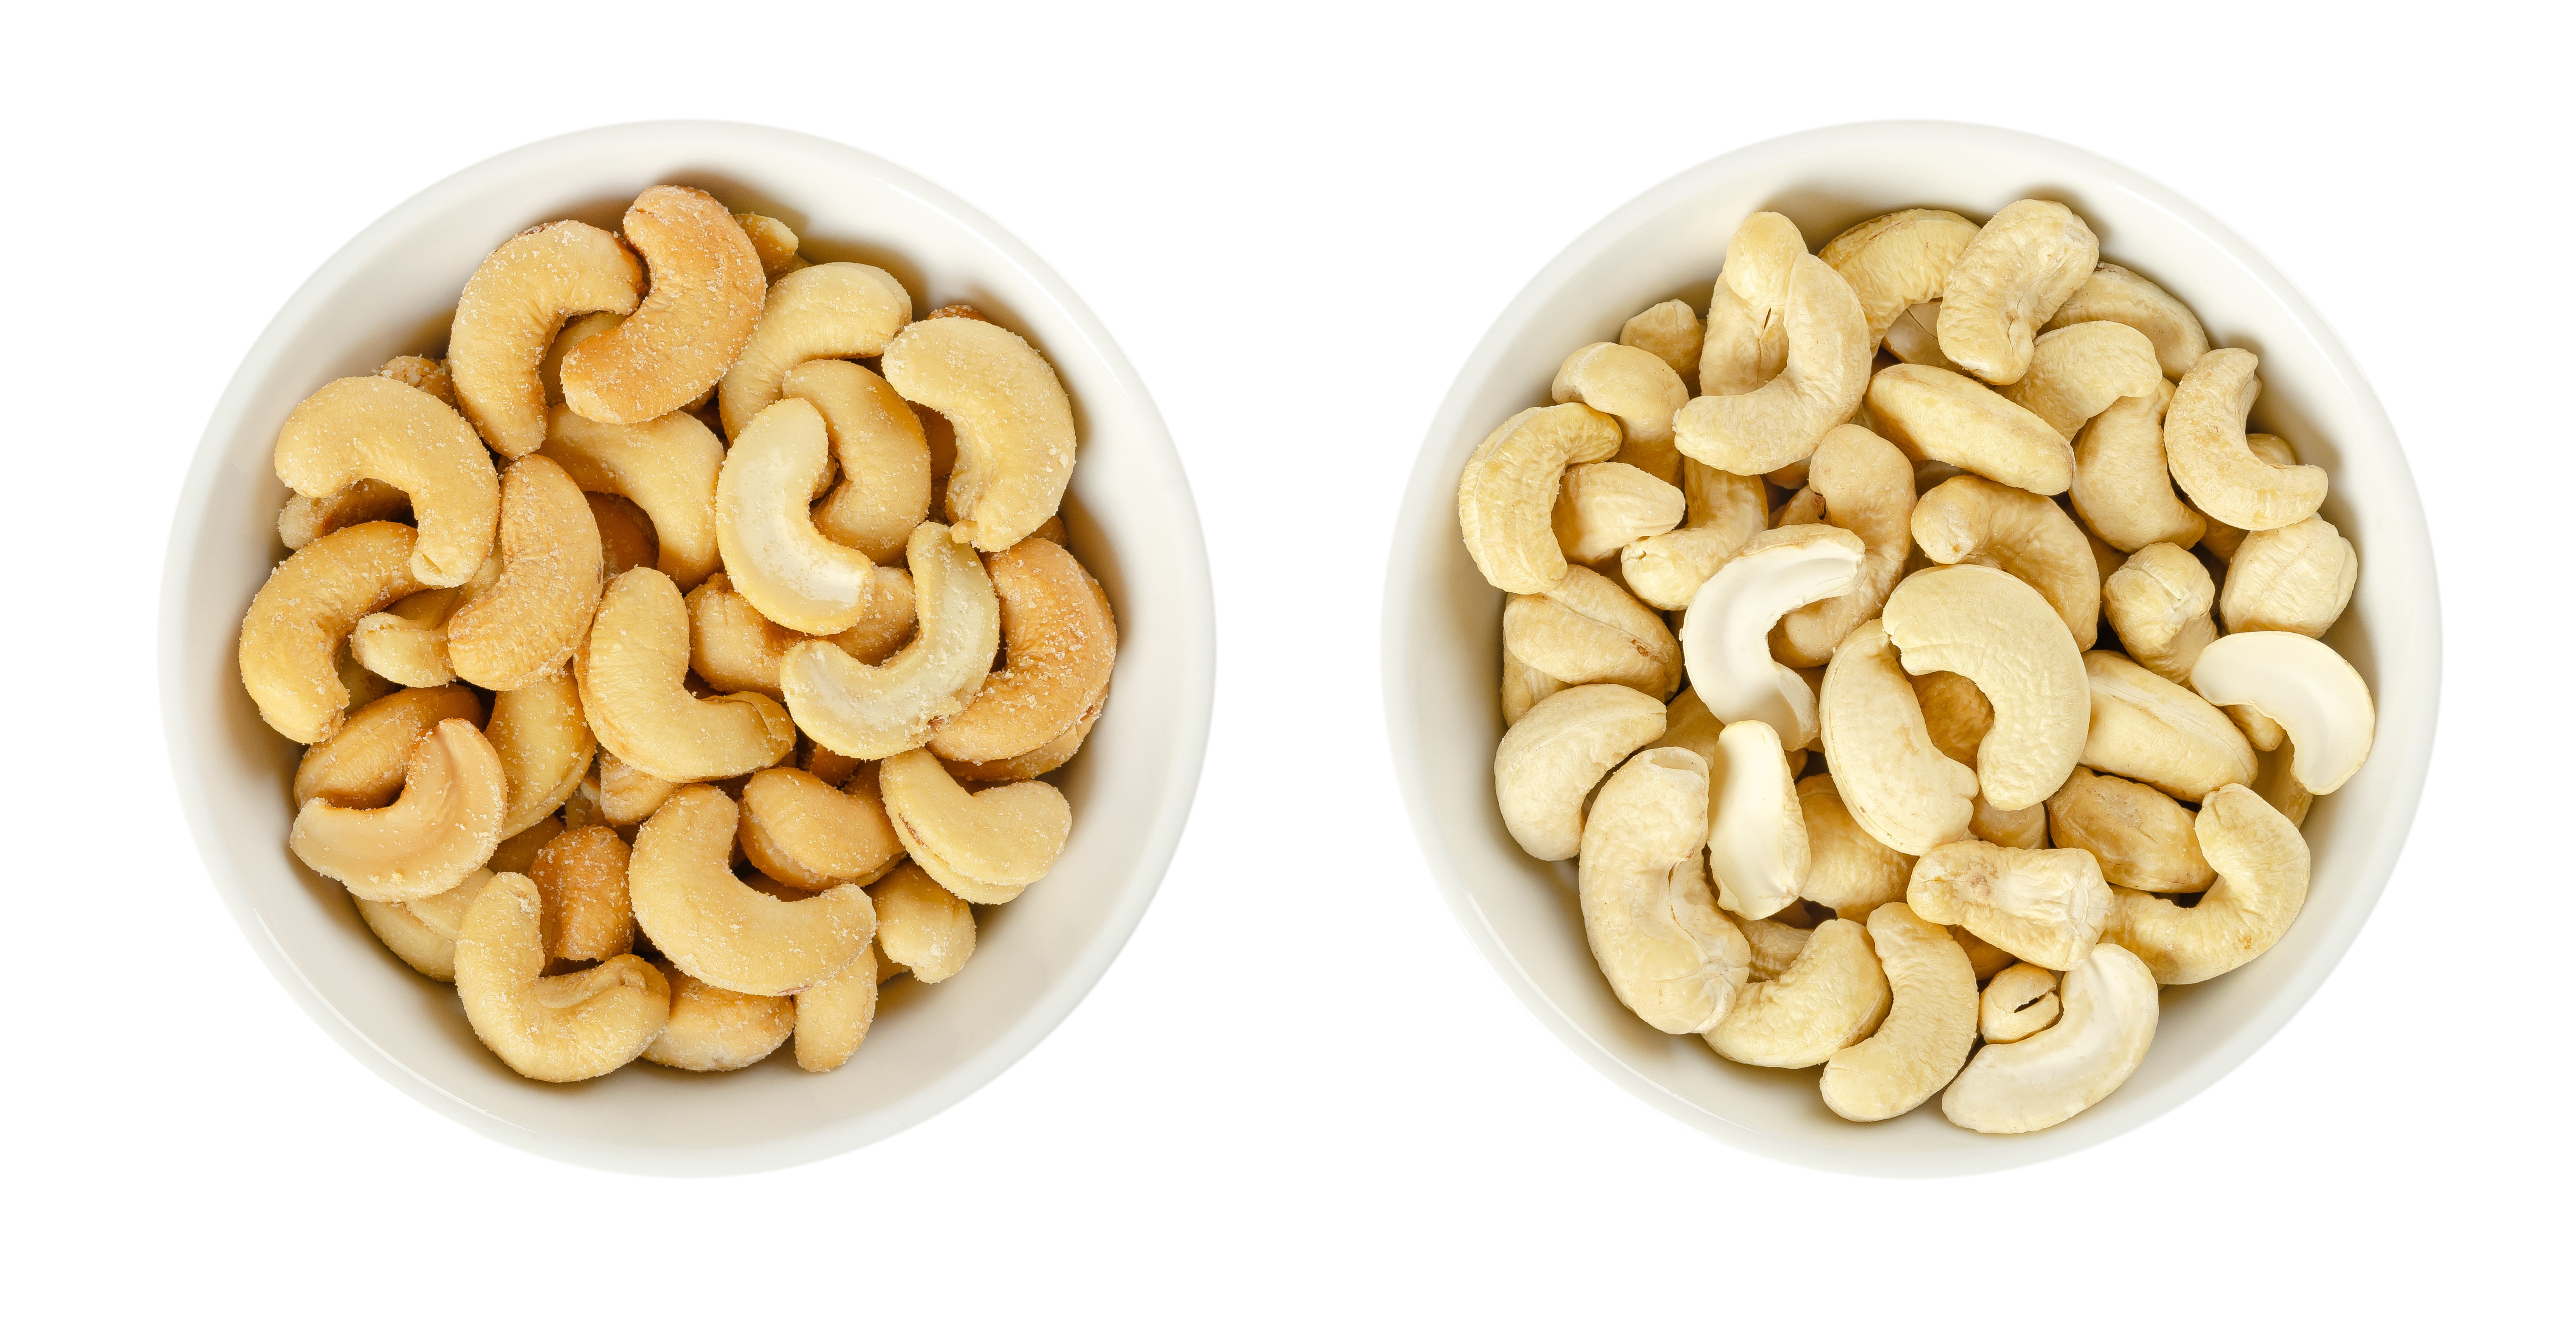 Raw vs. Roasted Nuts